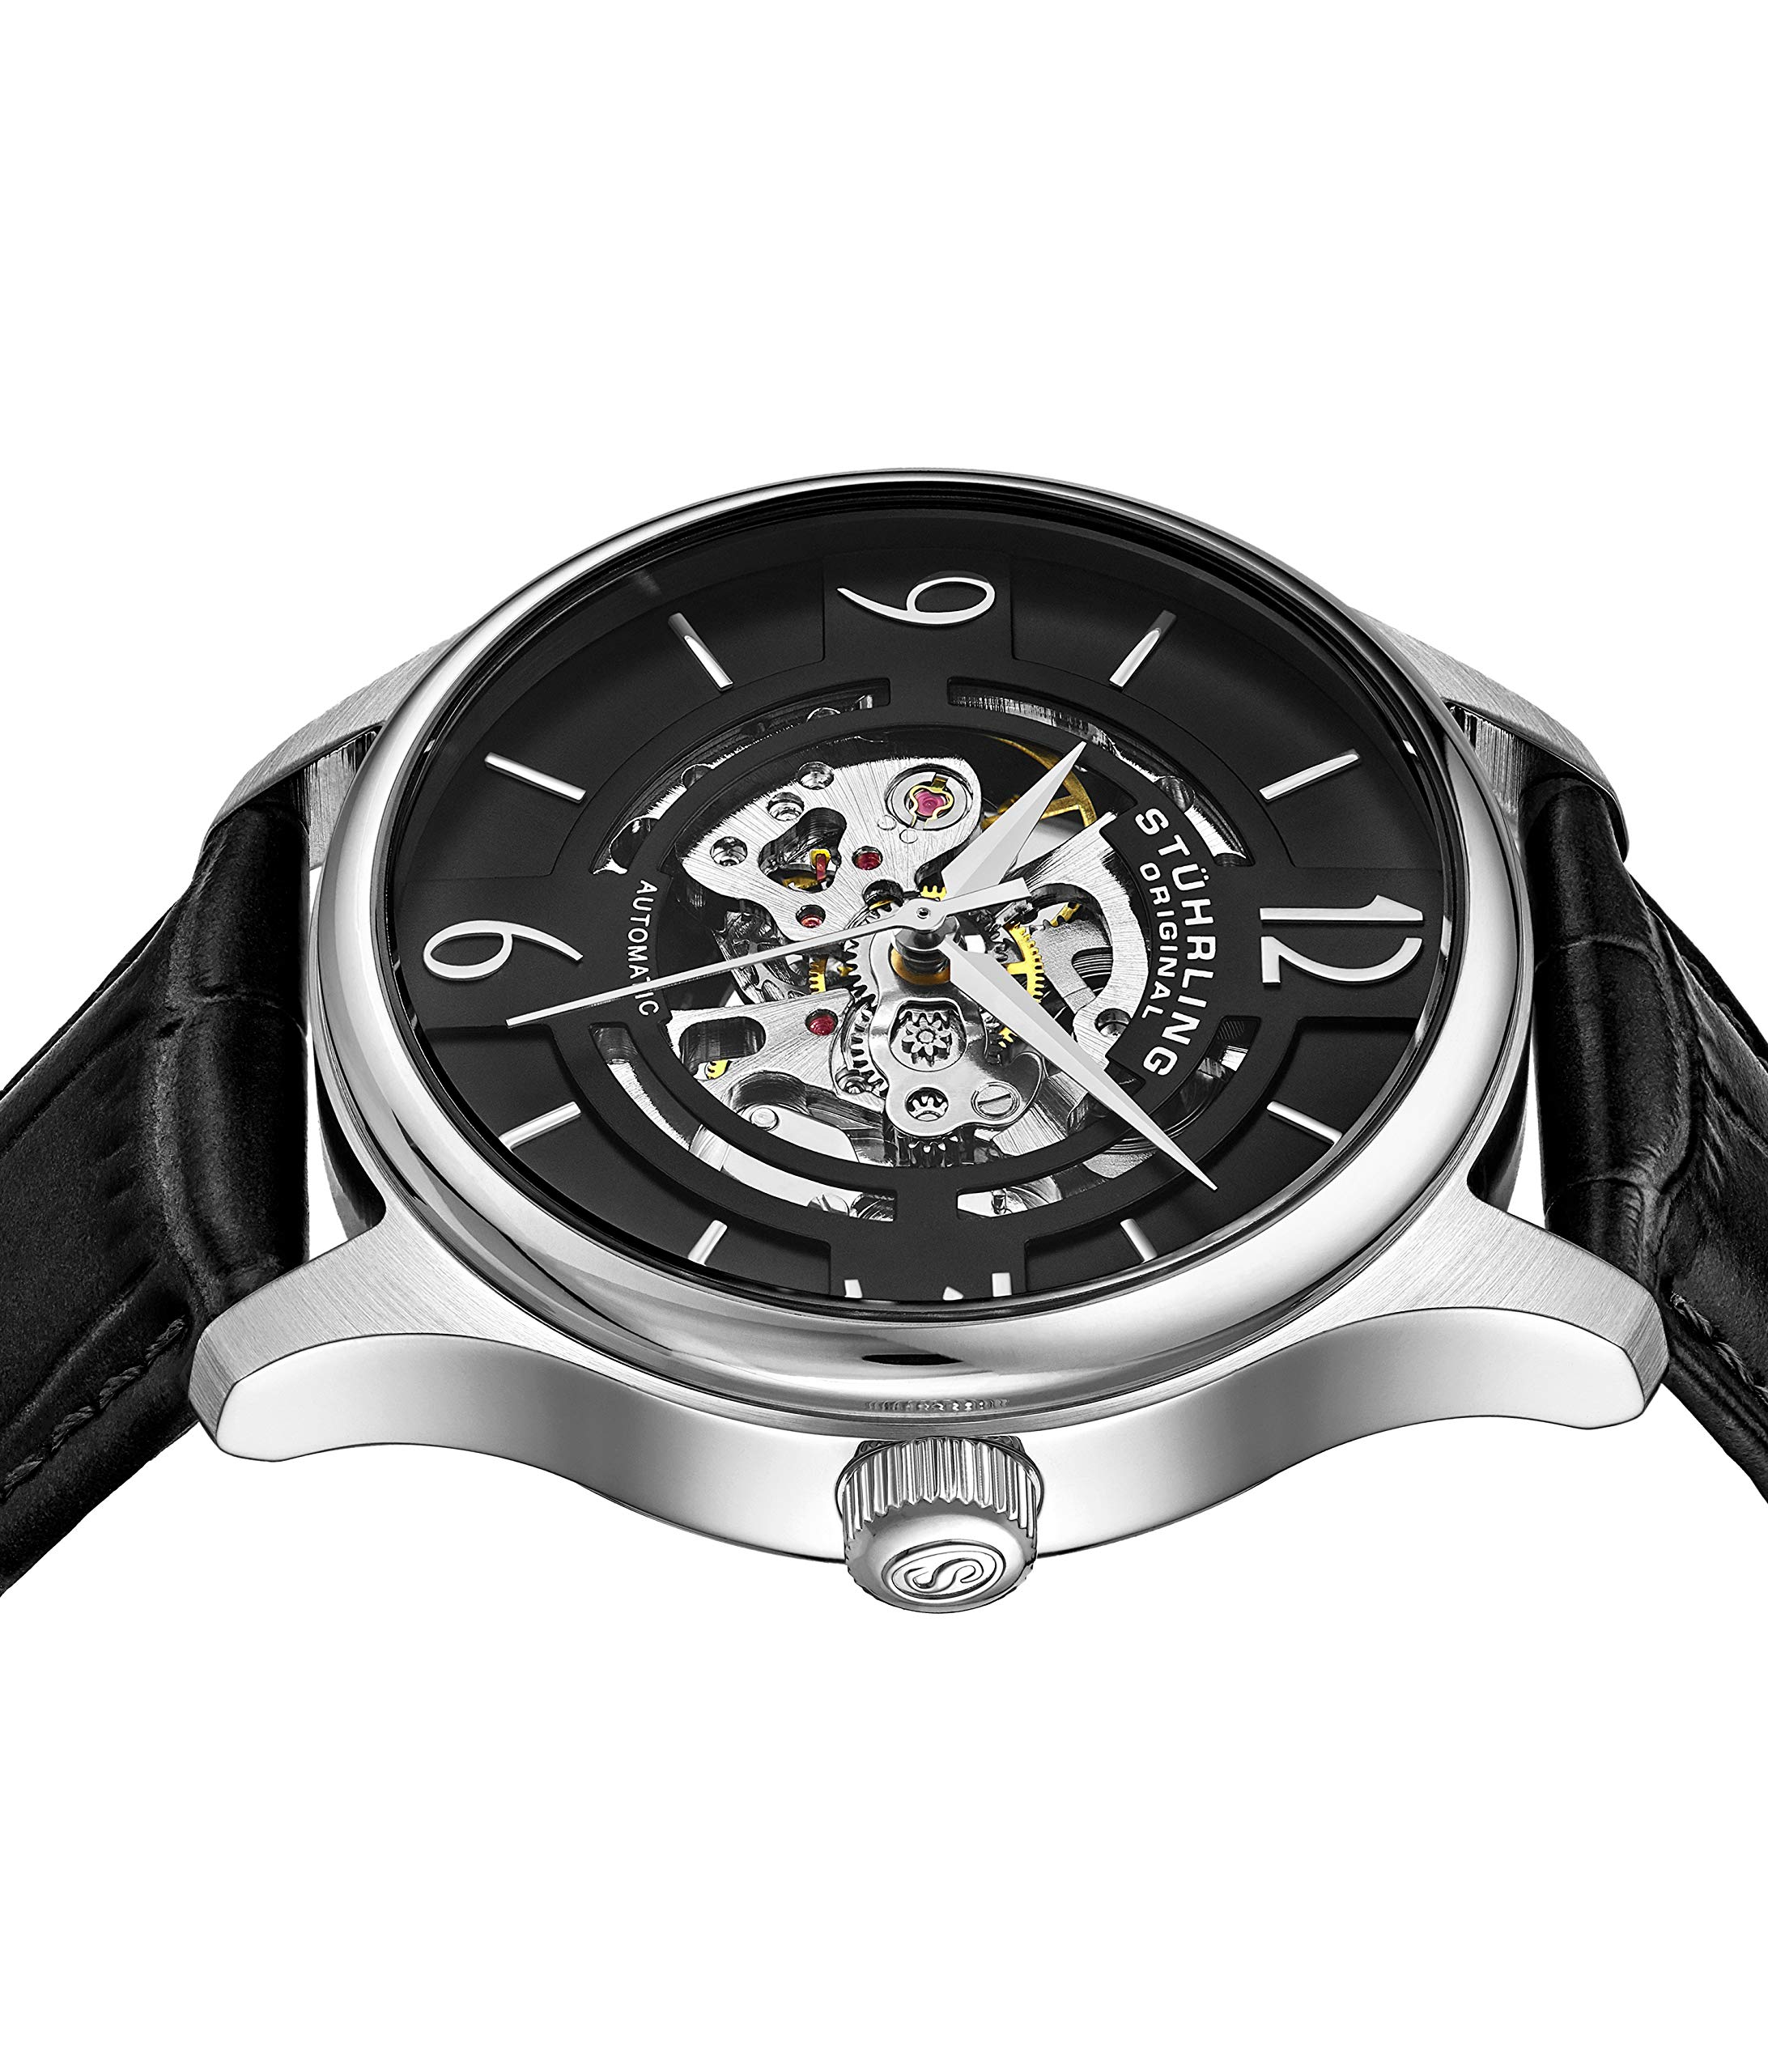 Stuhrling Original Mens''Specialty Atrium'' Skeleton Automatic Self Winding Dress Watch with Premium Leather Band by Stuhrling Original (Image #4)